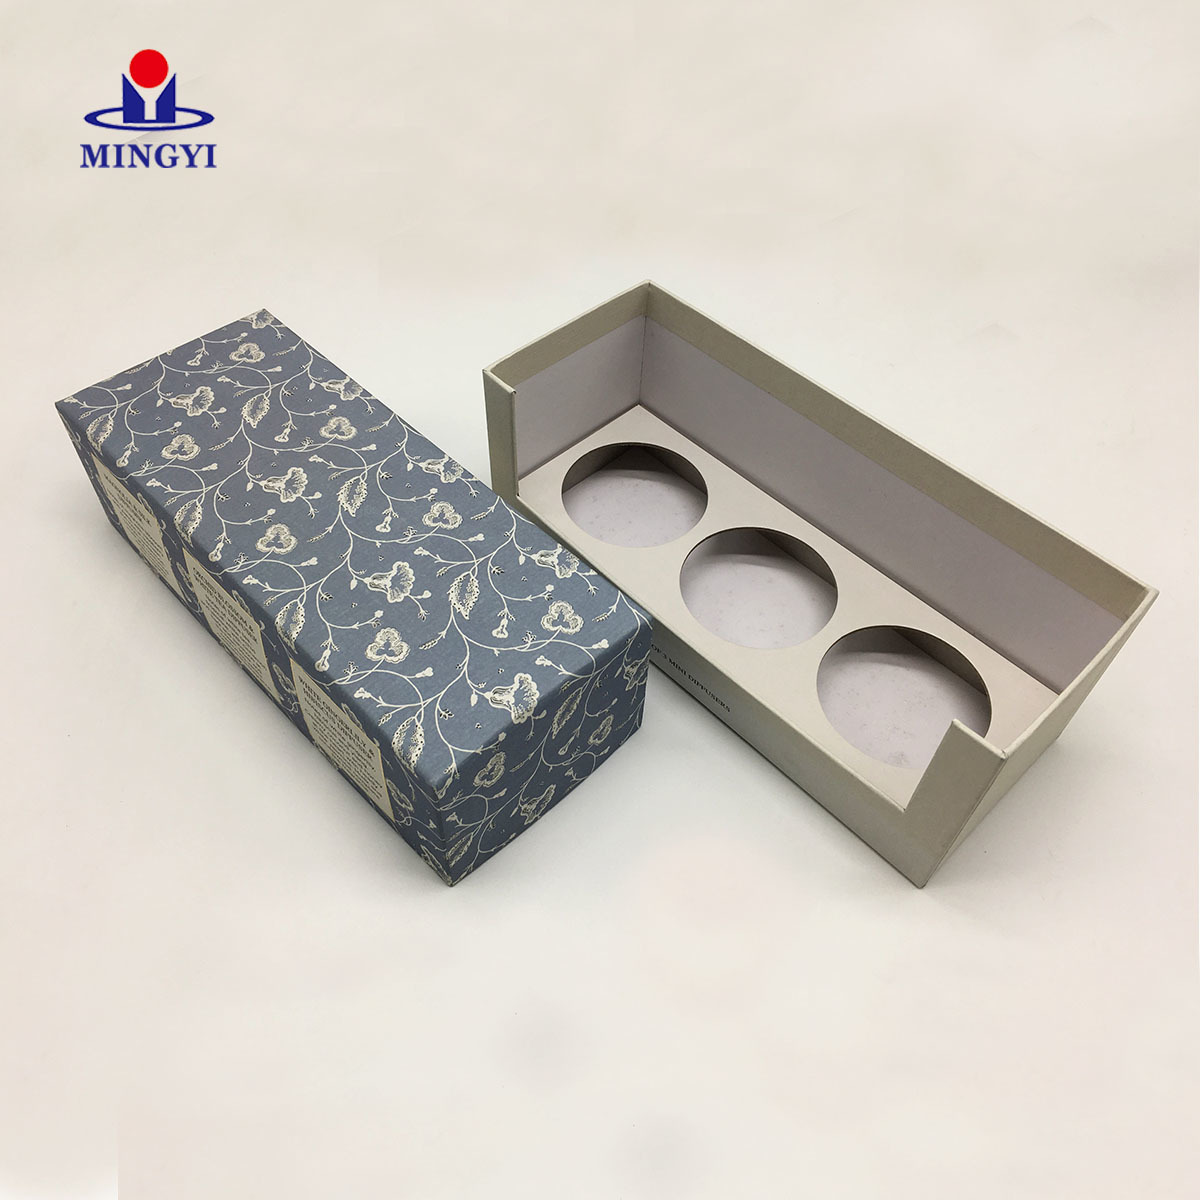 Mingyi Printing Luxury cosmetic packaging gift box Cardboard Gift Box image4